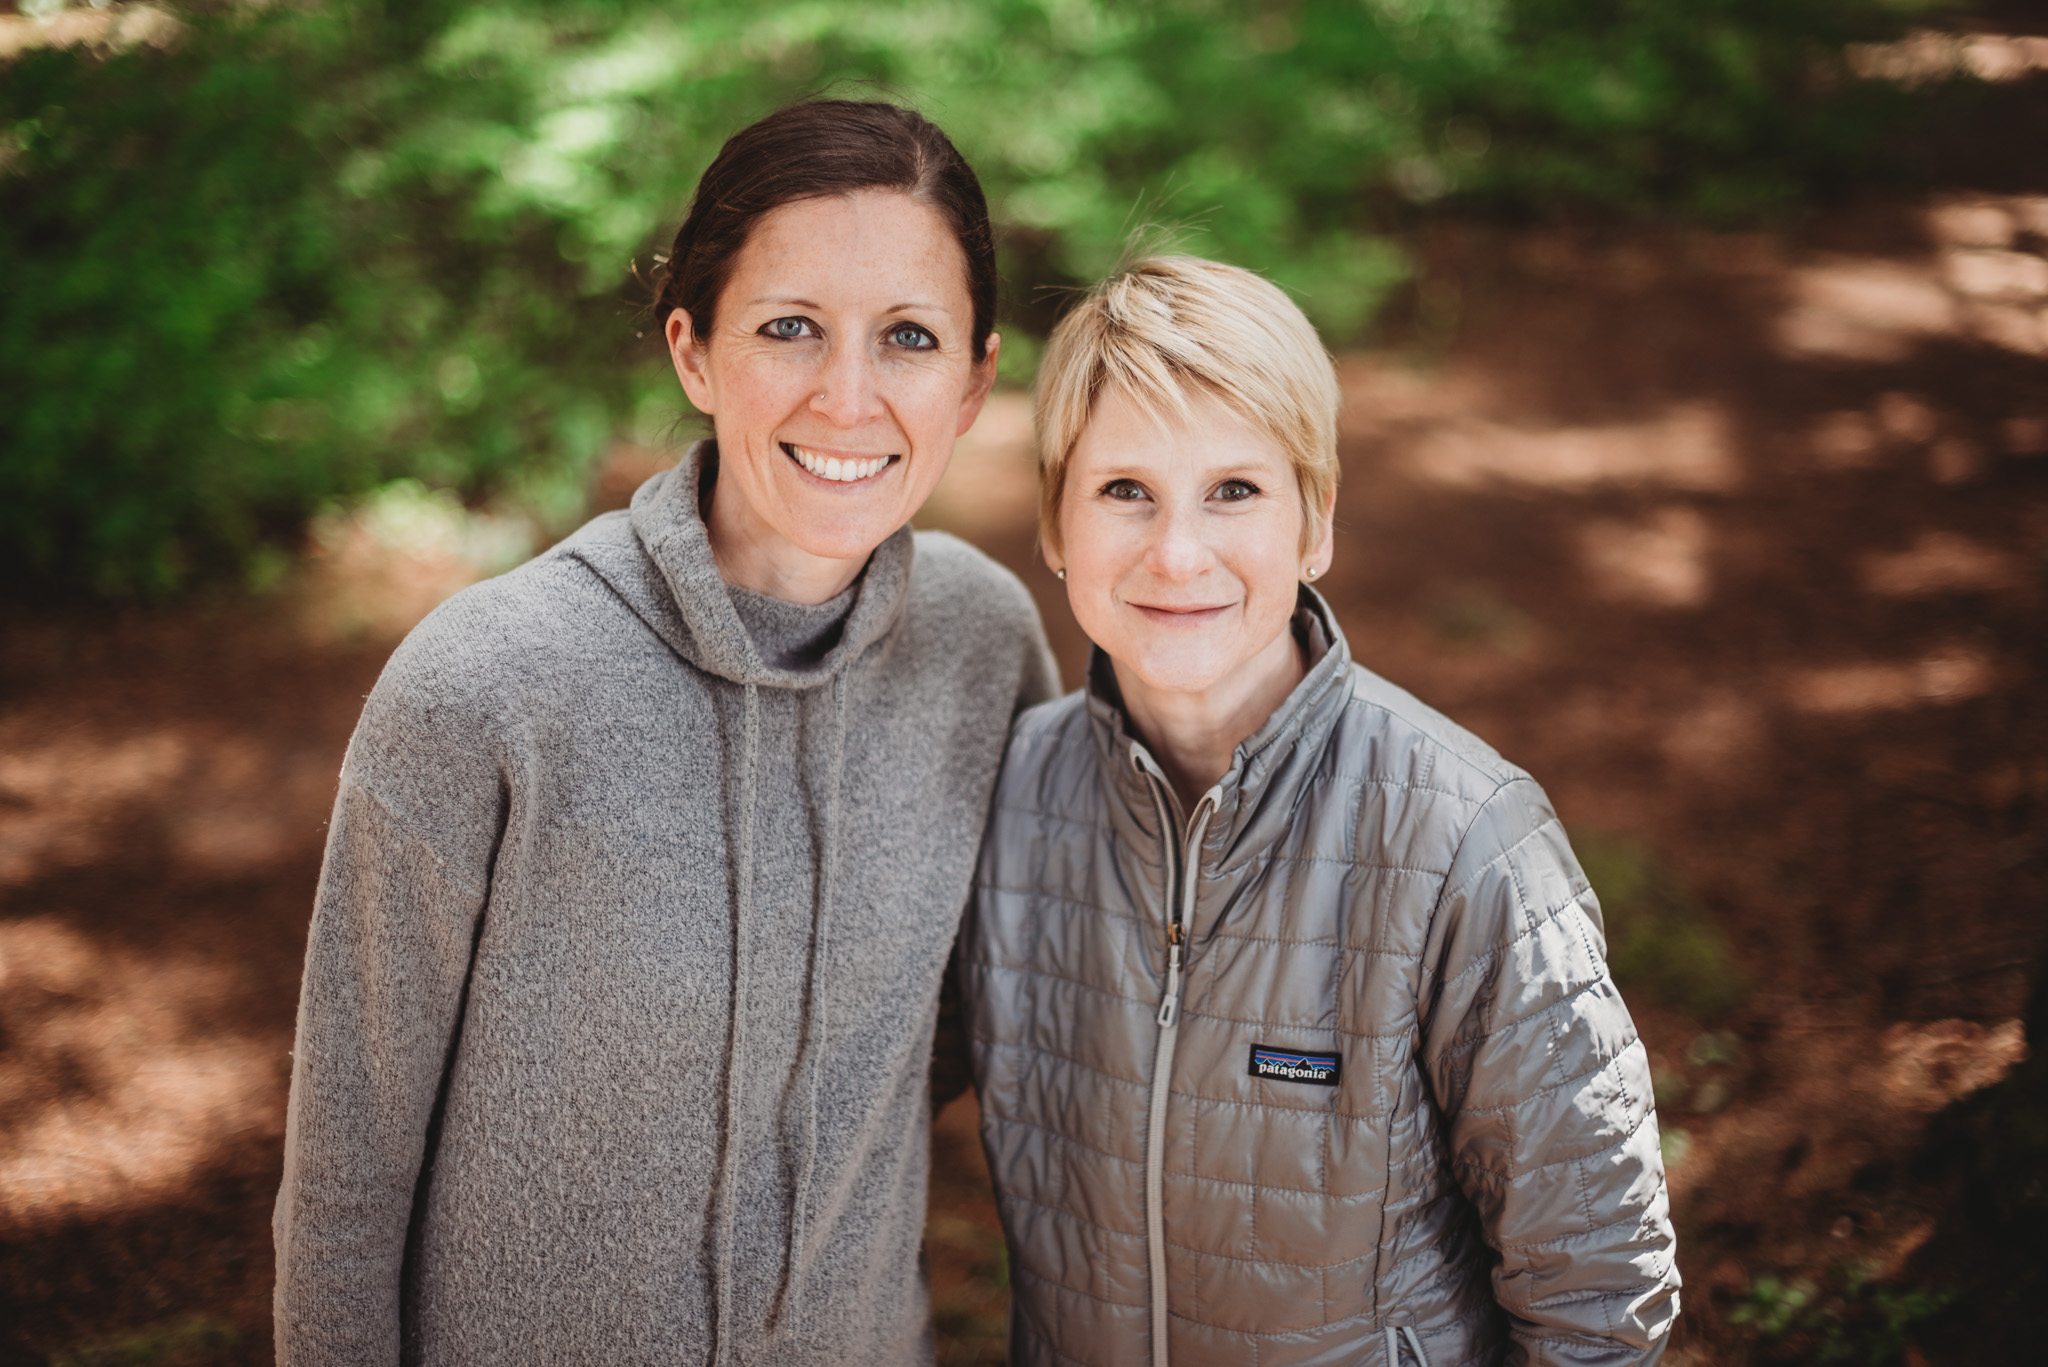 Brandyn Boyd and Jenny Stokes founded  Magnolia Forest Preschool  to provide Kitsap area families with an innovative education approach to outdoor play and learning.